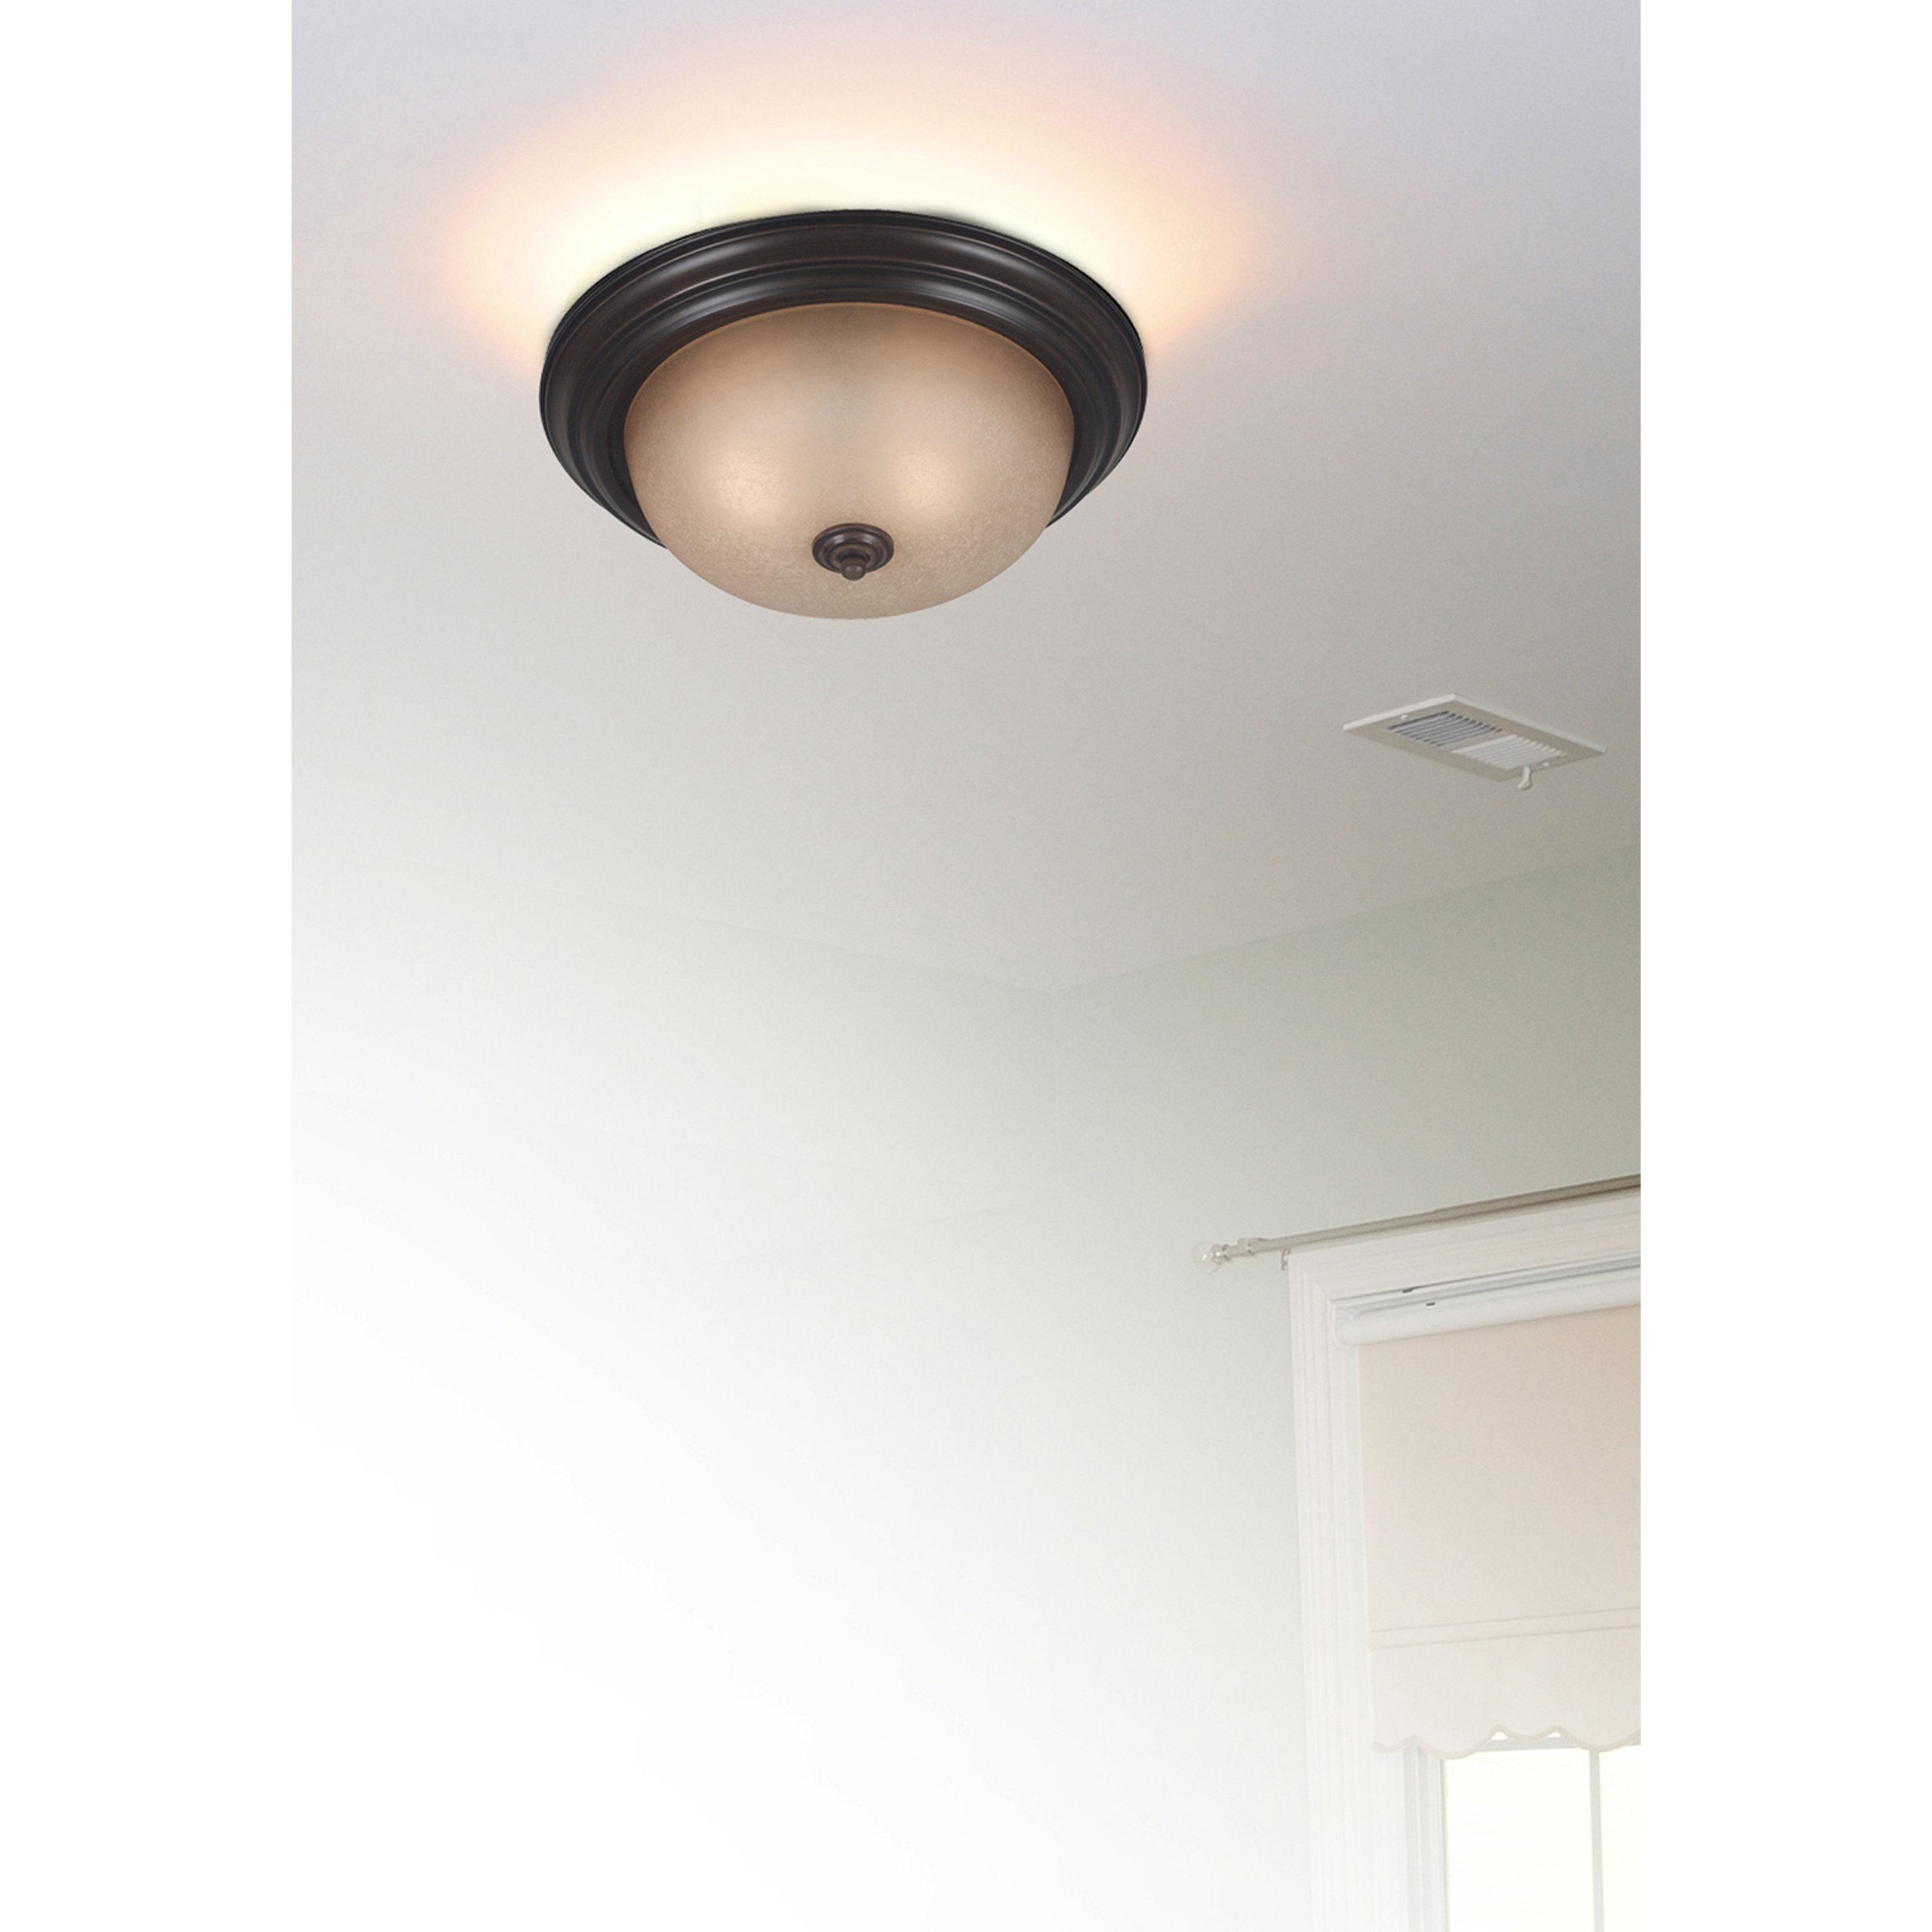 Kenroy Home 80367COCO Triomphe Two-Light Flush Mount Light With 10-Inch Amber Scavo Glass Shade - Fluoroscent, Cocoa